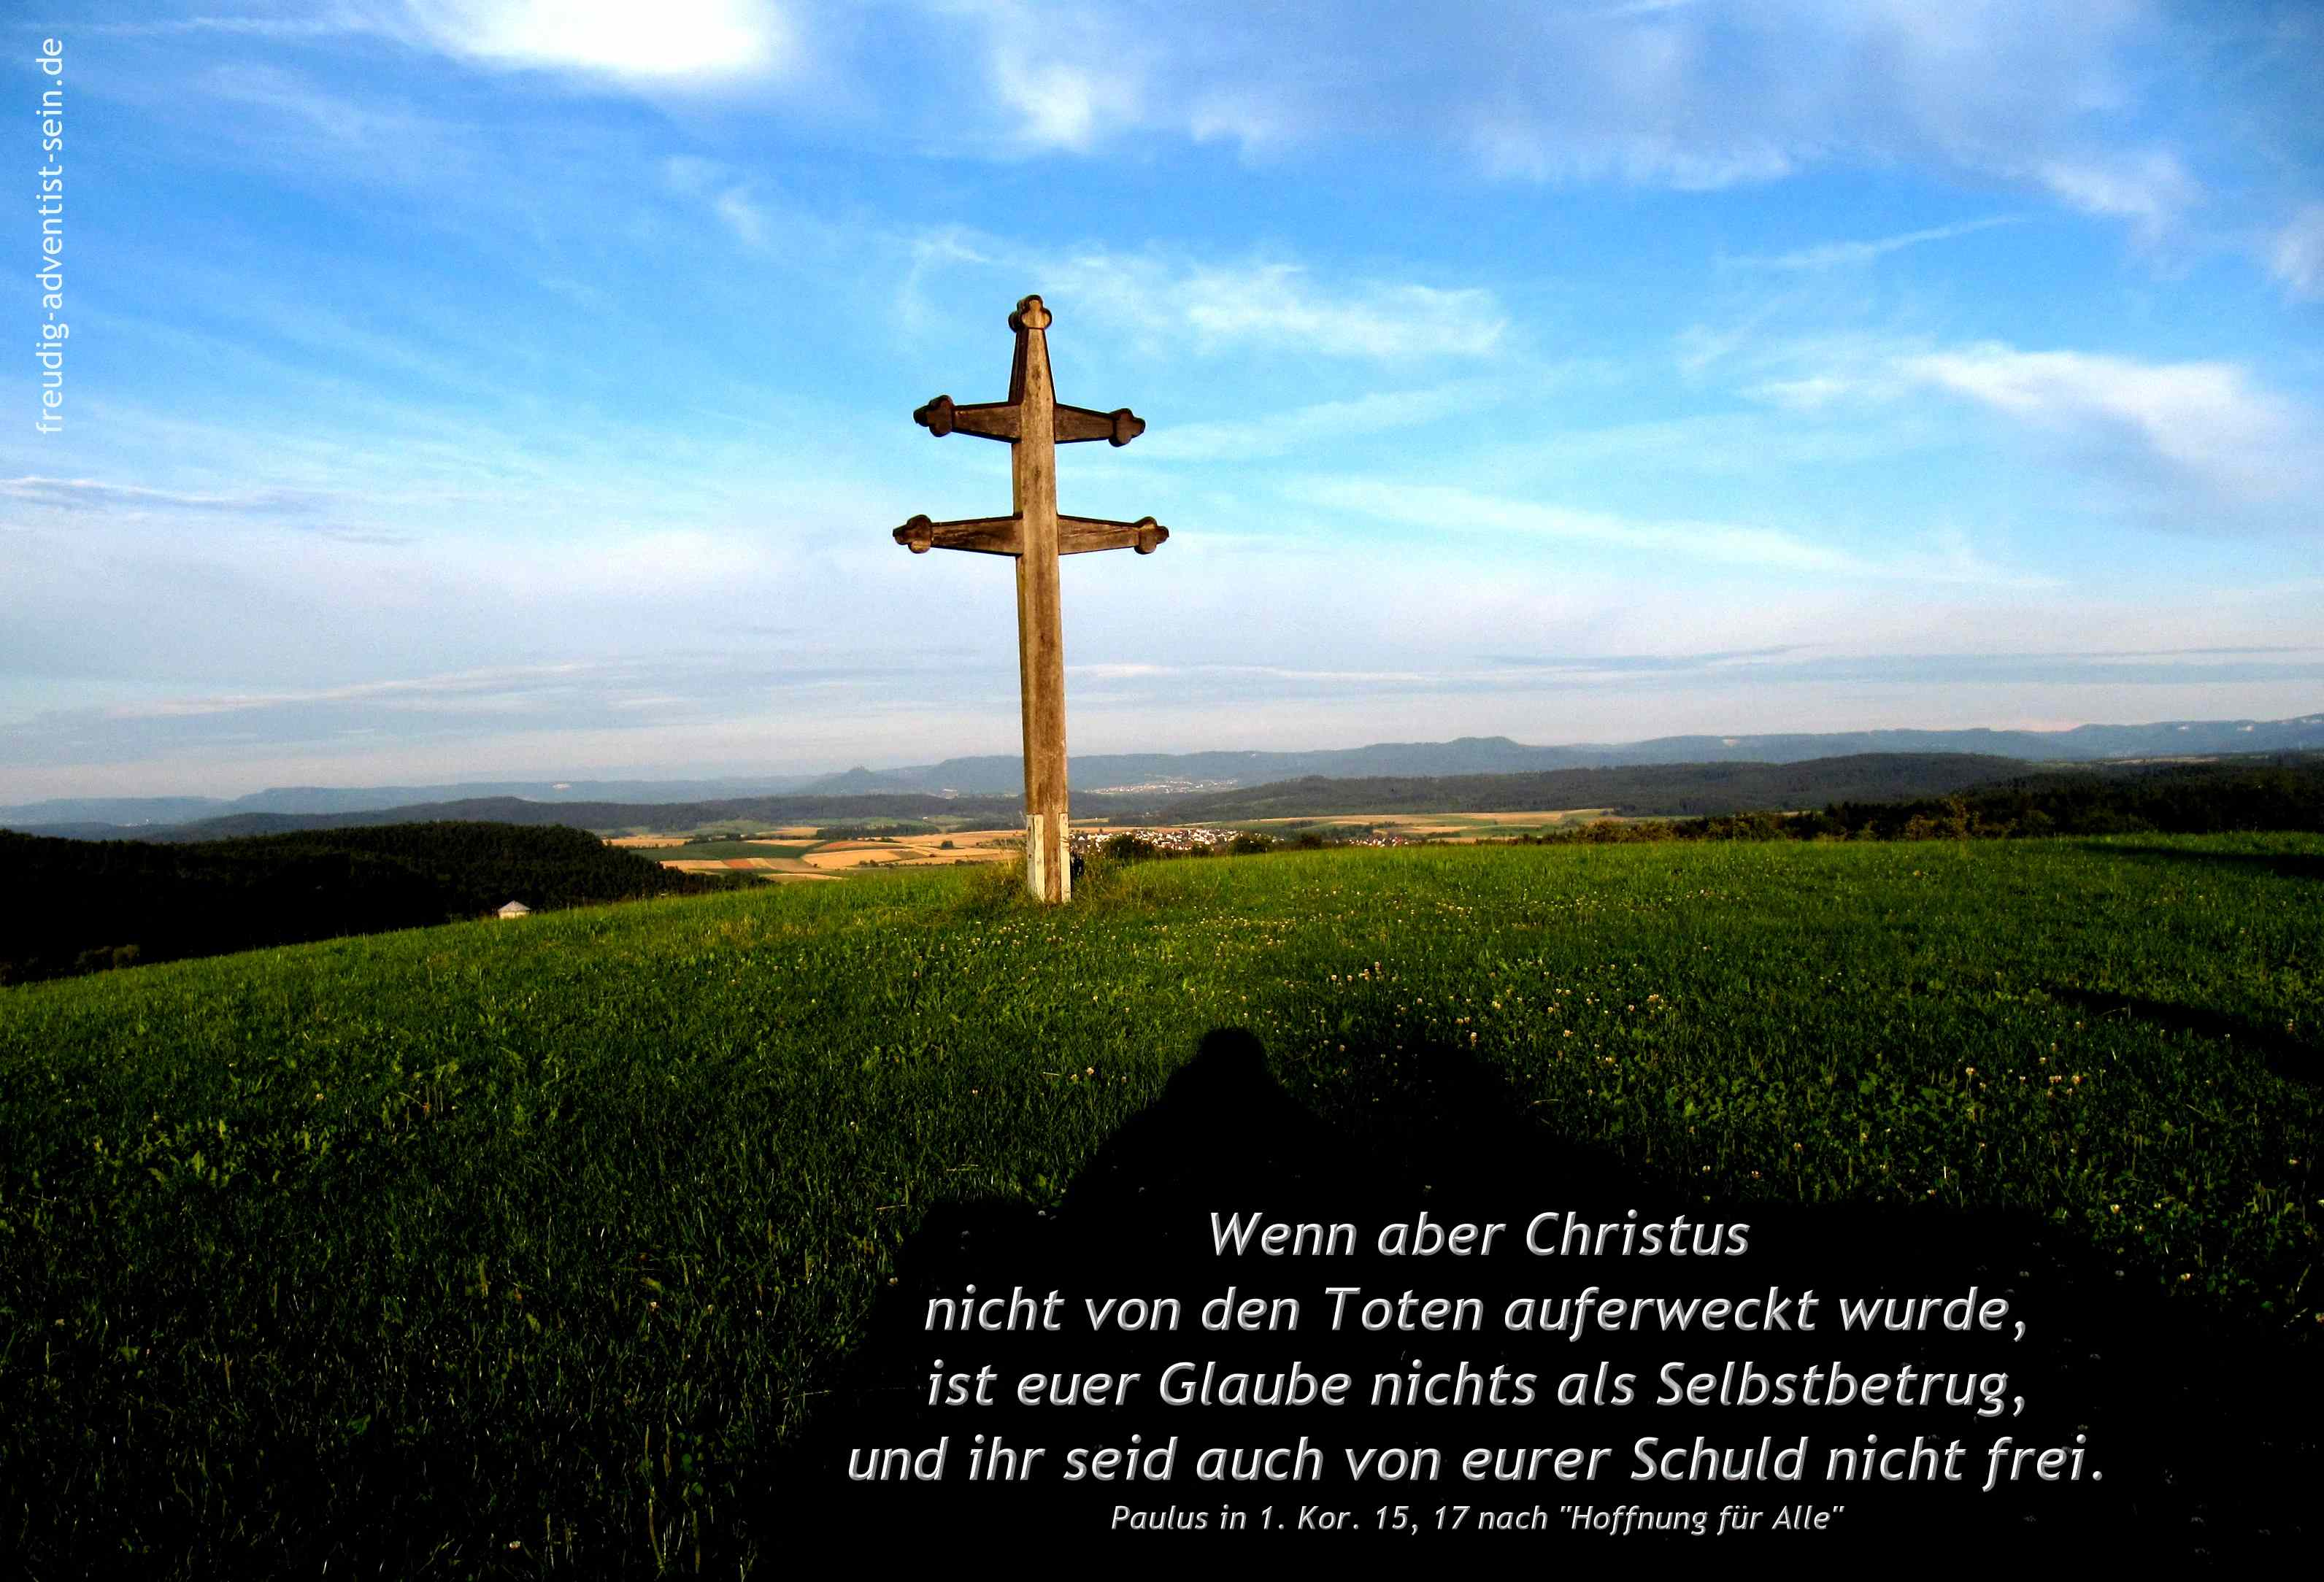 freudig-adventist-sein-13-13-small.jpg